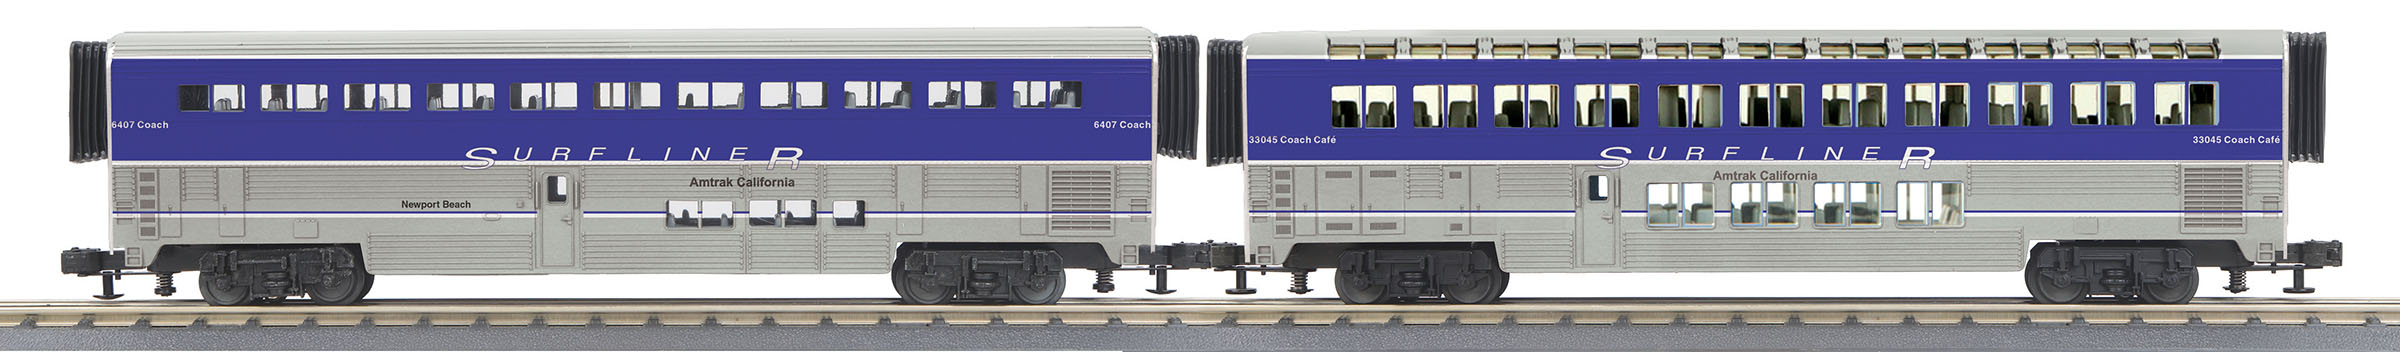 MTH 306533 O-31 SuperLiner Set, Amtrak/Lounge/Surfliner #6461 MTH306533